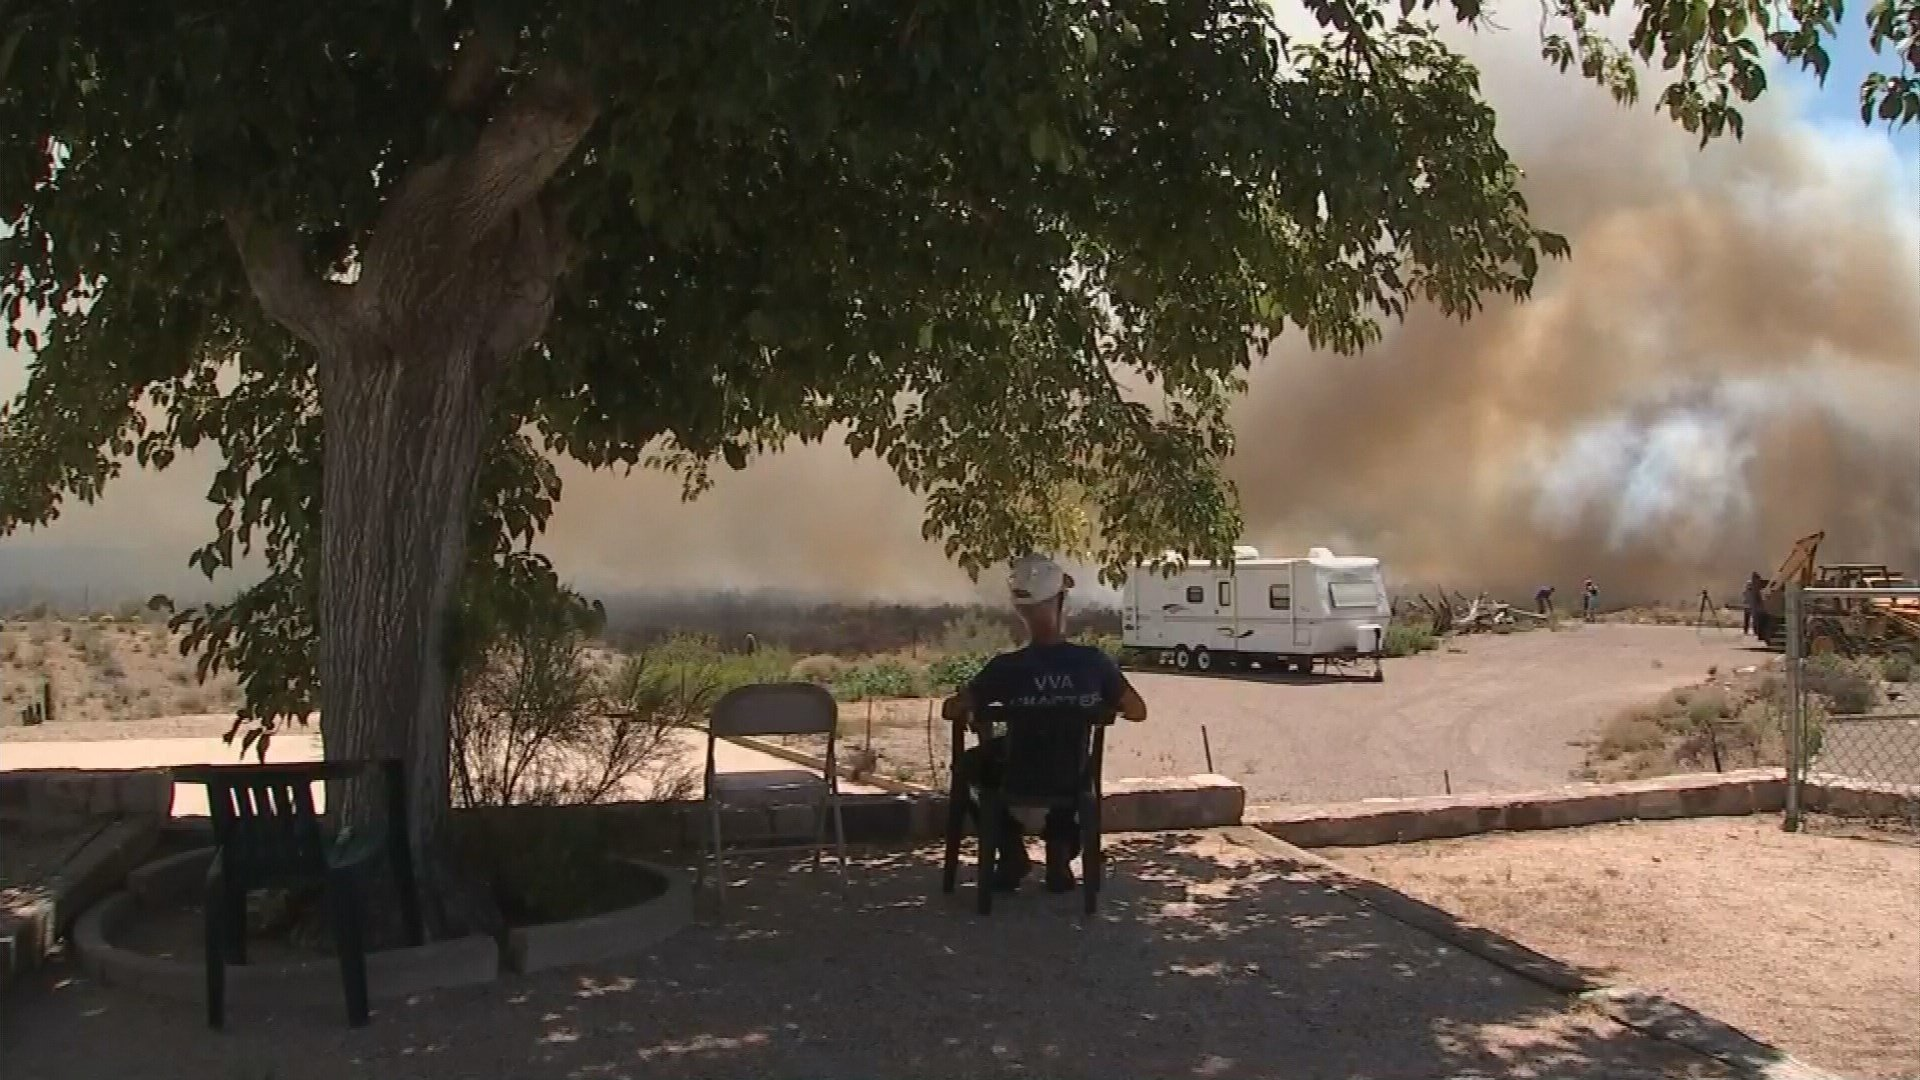 Residents are keeping a wary eye on the smoke and fire. (Source: KPHO/KTVK)